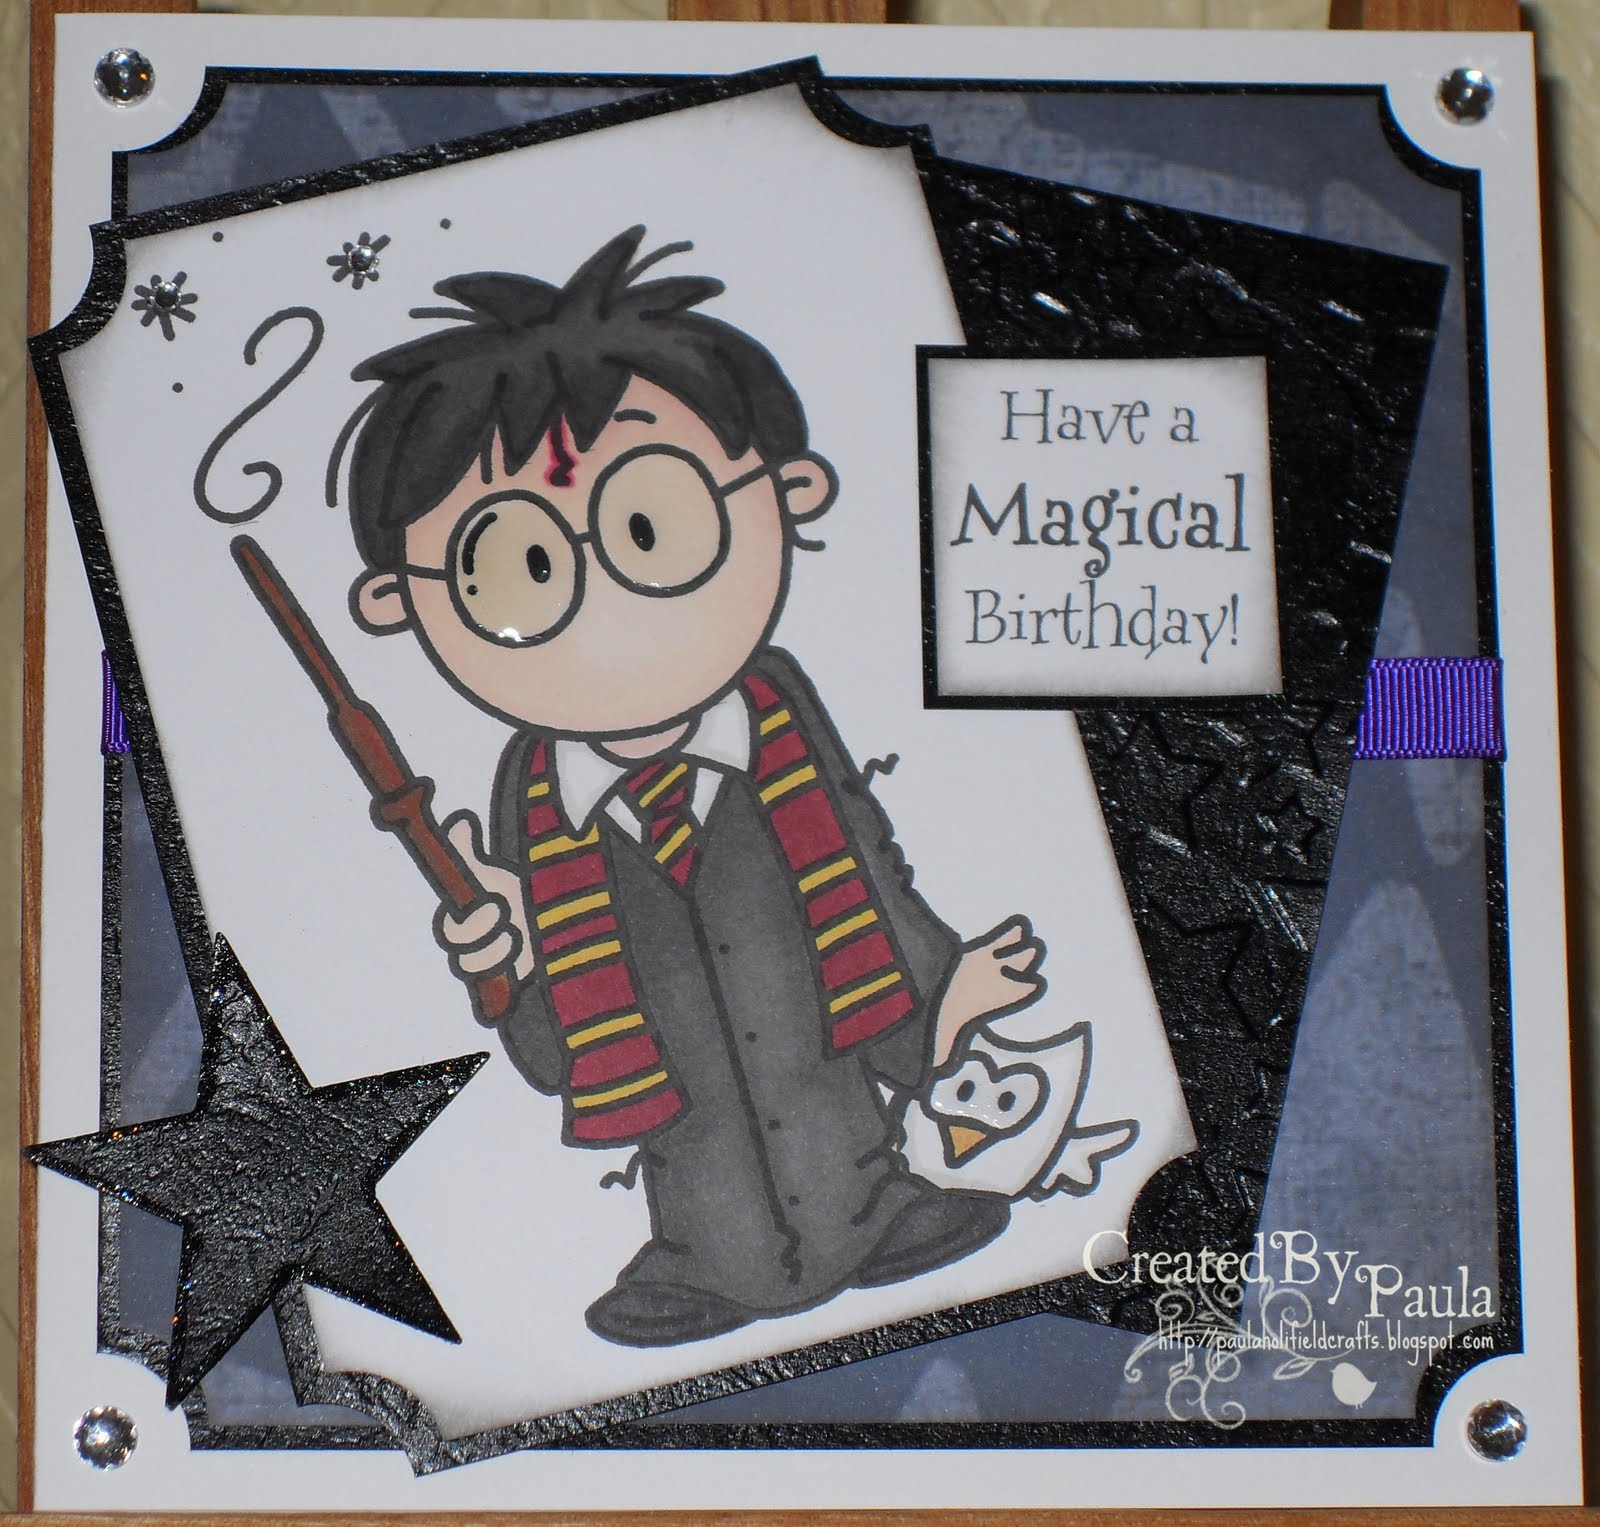 Paulaholifieldcrafts: Harry Potter Birthday Card